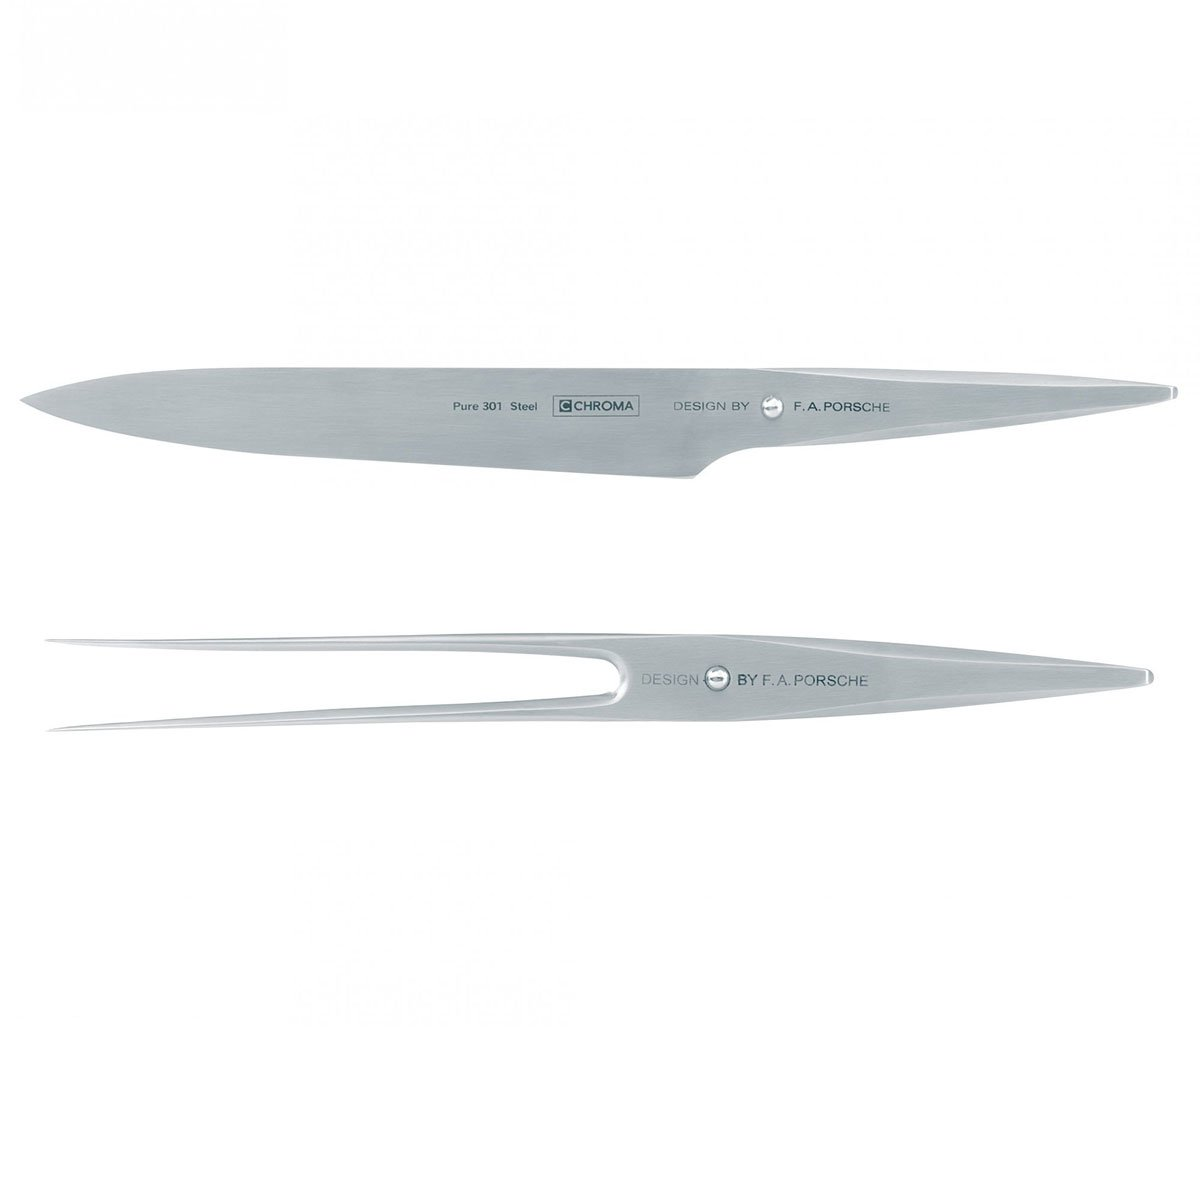 Chroma by F. A. Porsche Type 301 Carving Fork and 8-Inch Chef's Knife by Chroma (Image #1)